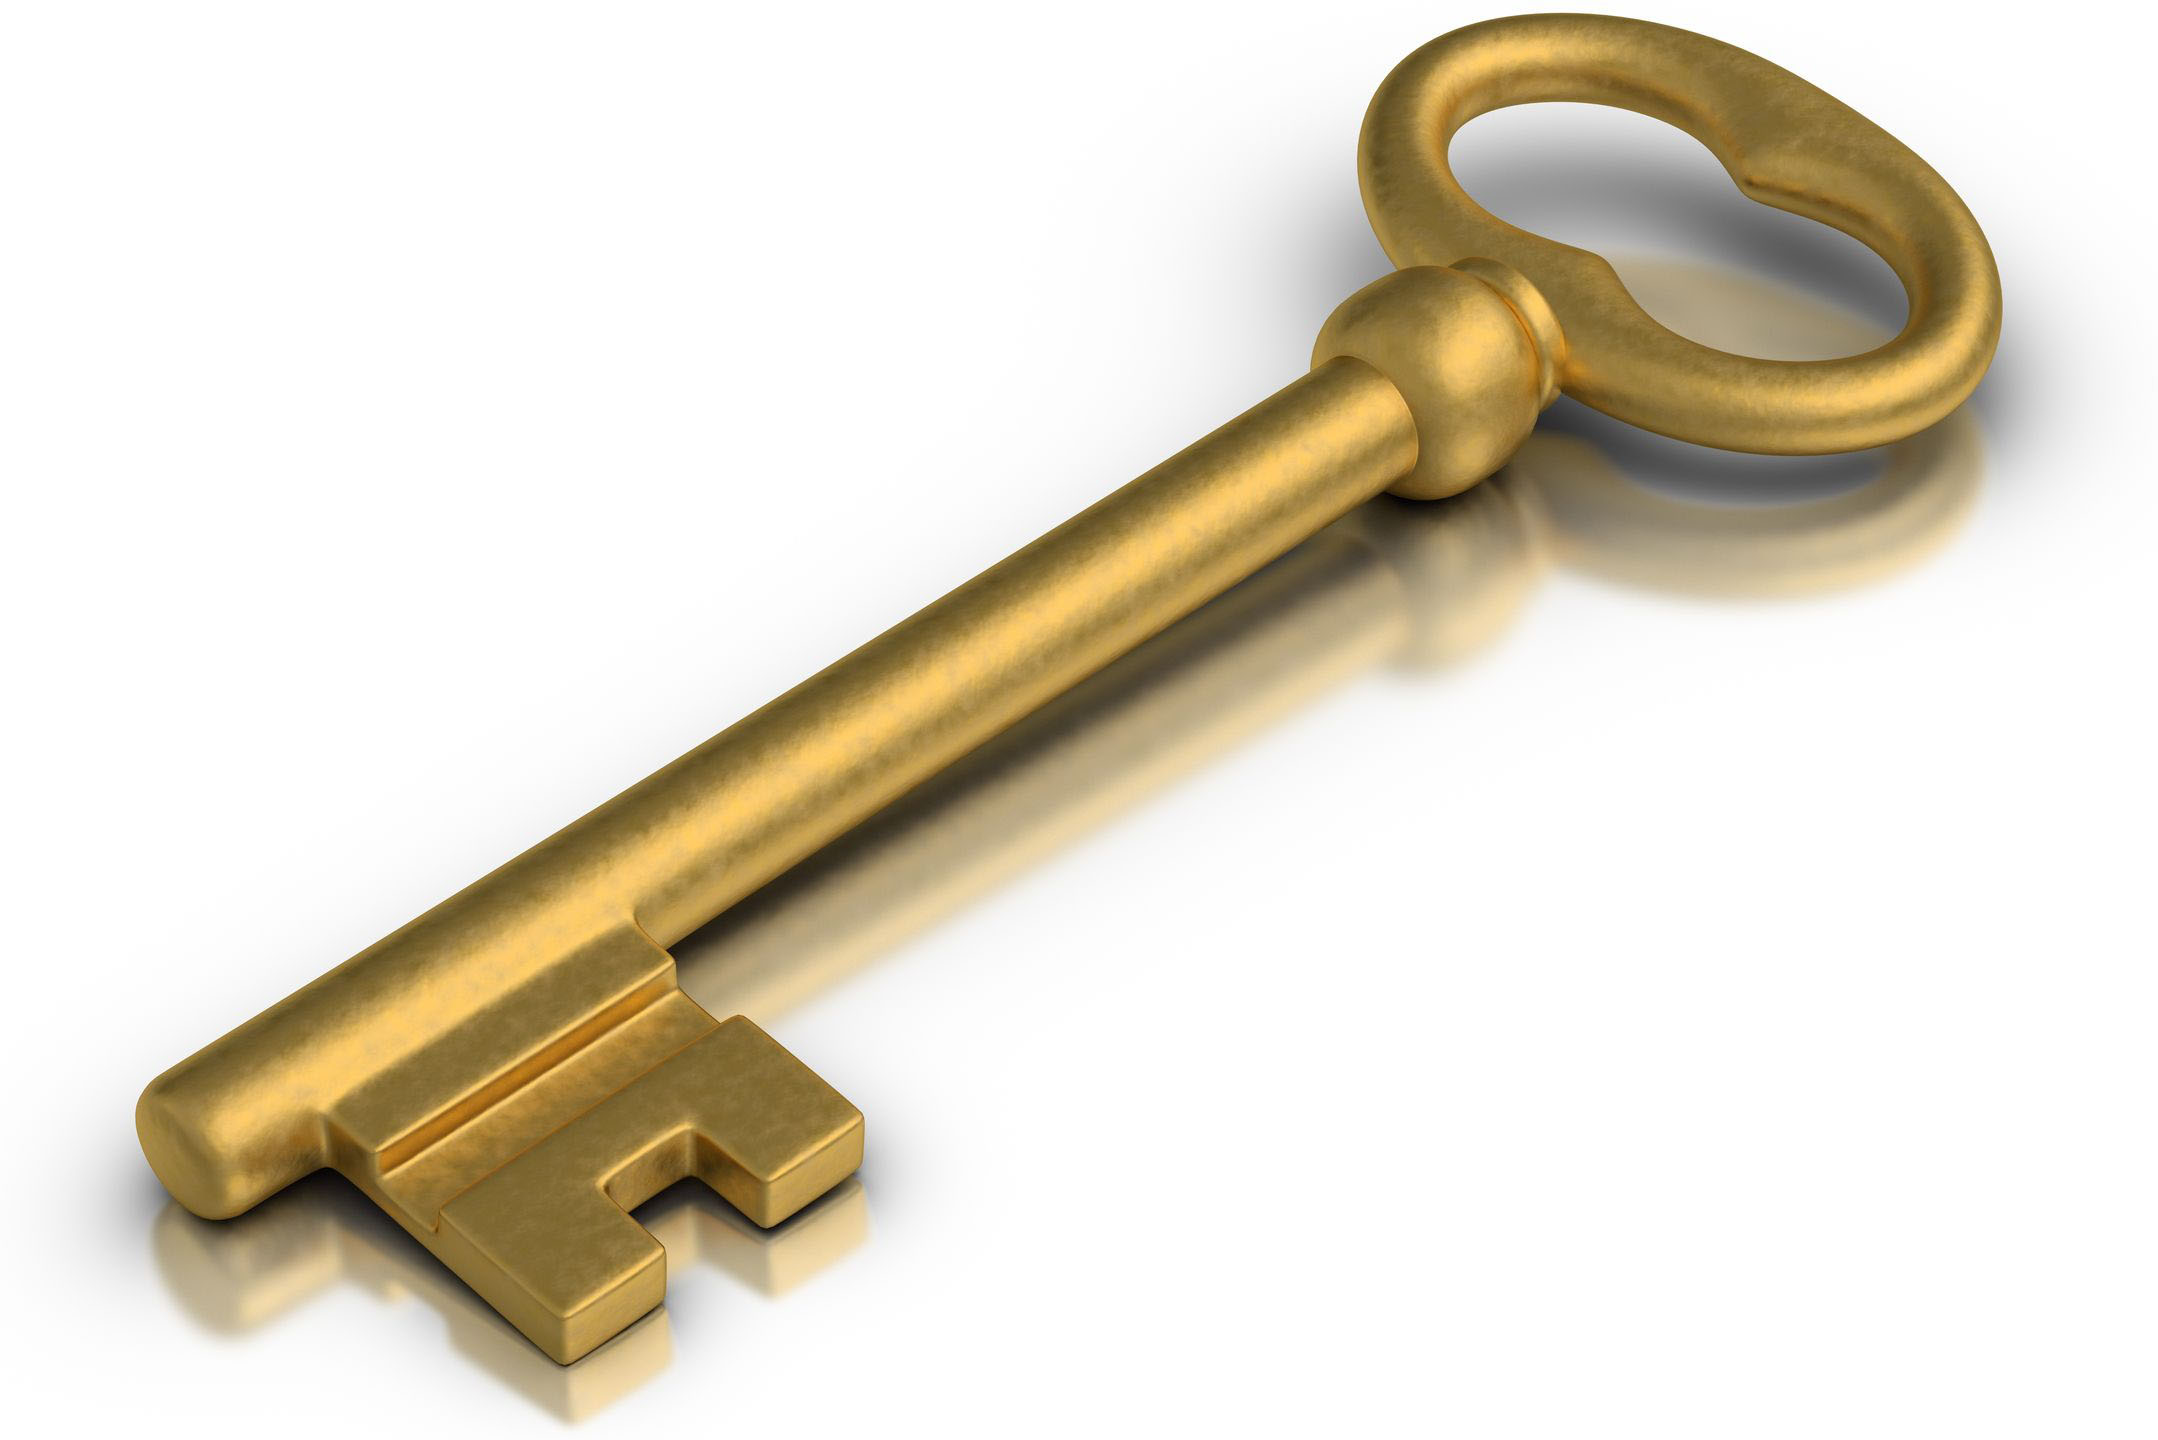 Golden Key - LIBERTY (SECURITY PRIVACY SAFETY) FREE WILL - UNIVERSAL SPENDING AUTHORITY - PRIVATE PROPERTY - FREE LAND - THERE IS NO GOVERNMENT - A GUARANTEED LIFETIME INCOME - NOW YOU OWN YOUR HOME AND LAND - NOW YOU HAVE AN INCOME